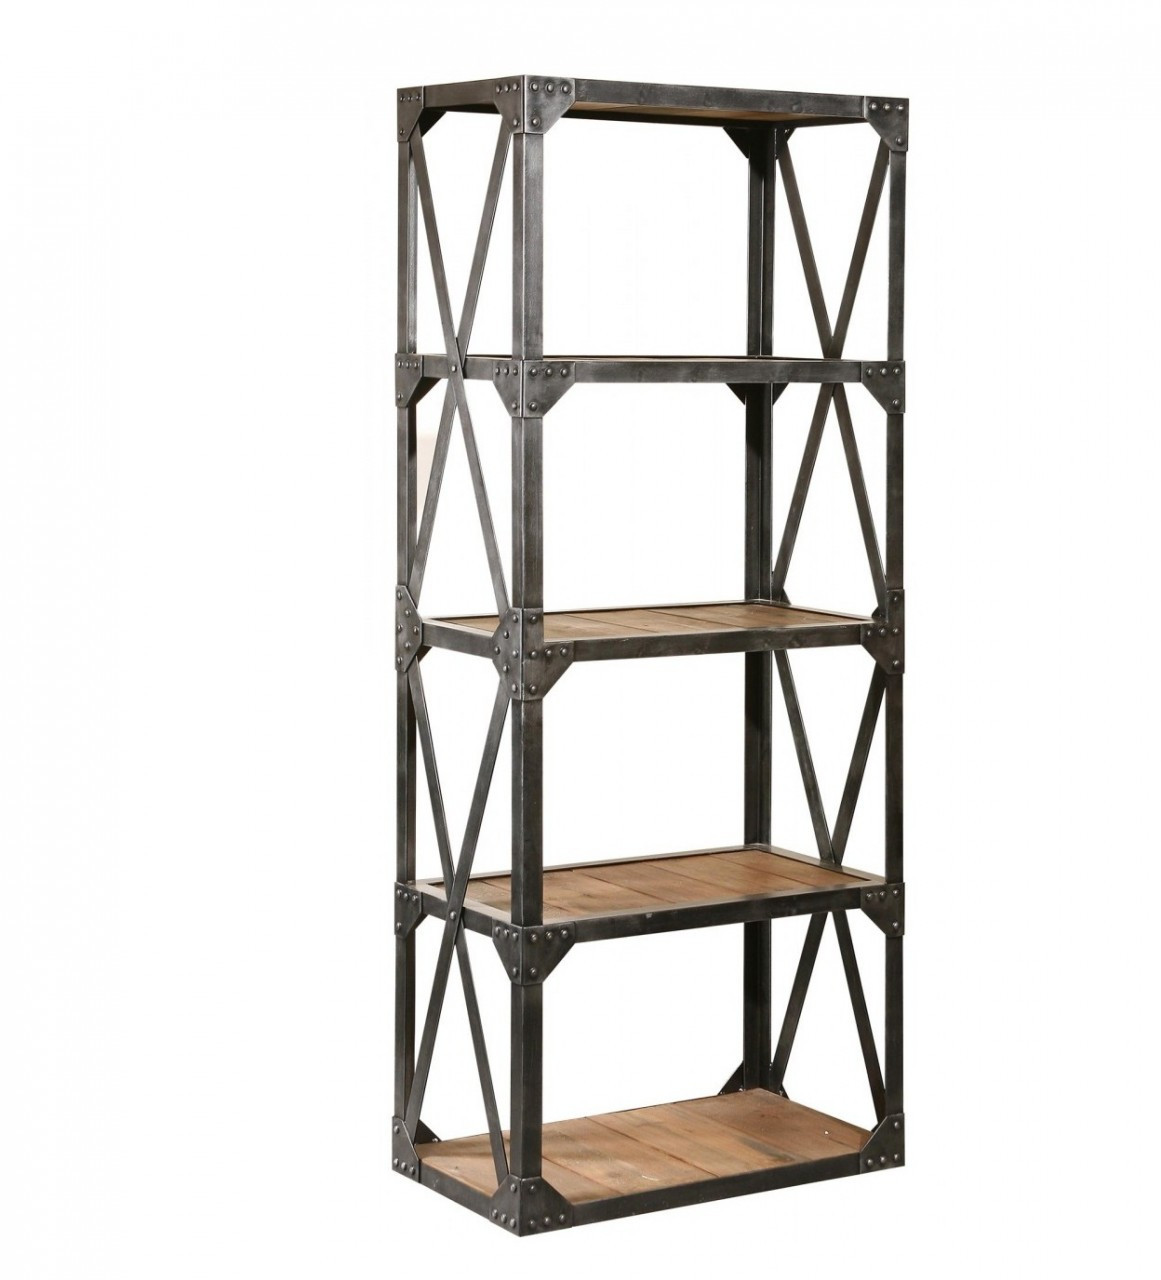 Industrial Reclaimed Narrow Bookcase - Industrial Reclaimed Narrow Bookcase Zin HomeSalvaged Wood